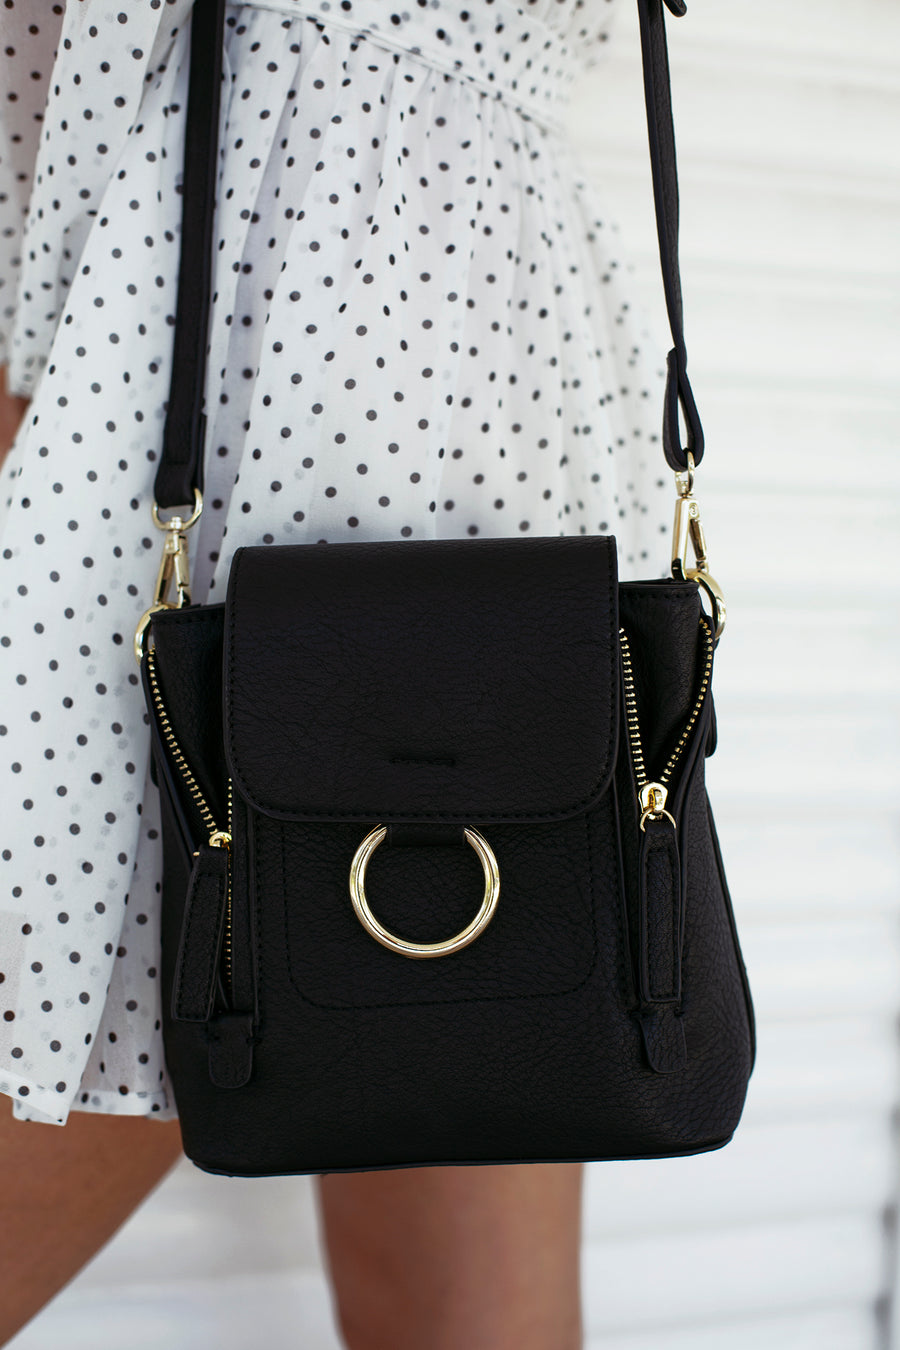 Kiki Bag in Black for $89.95